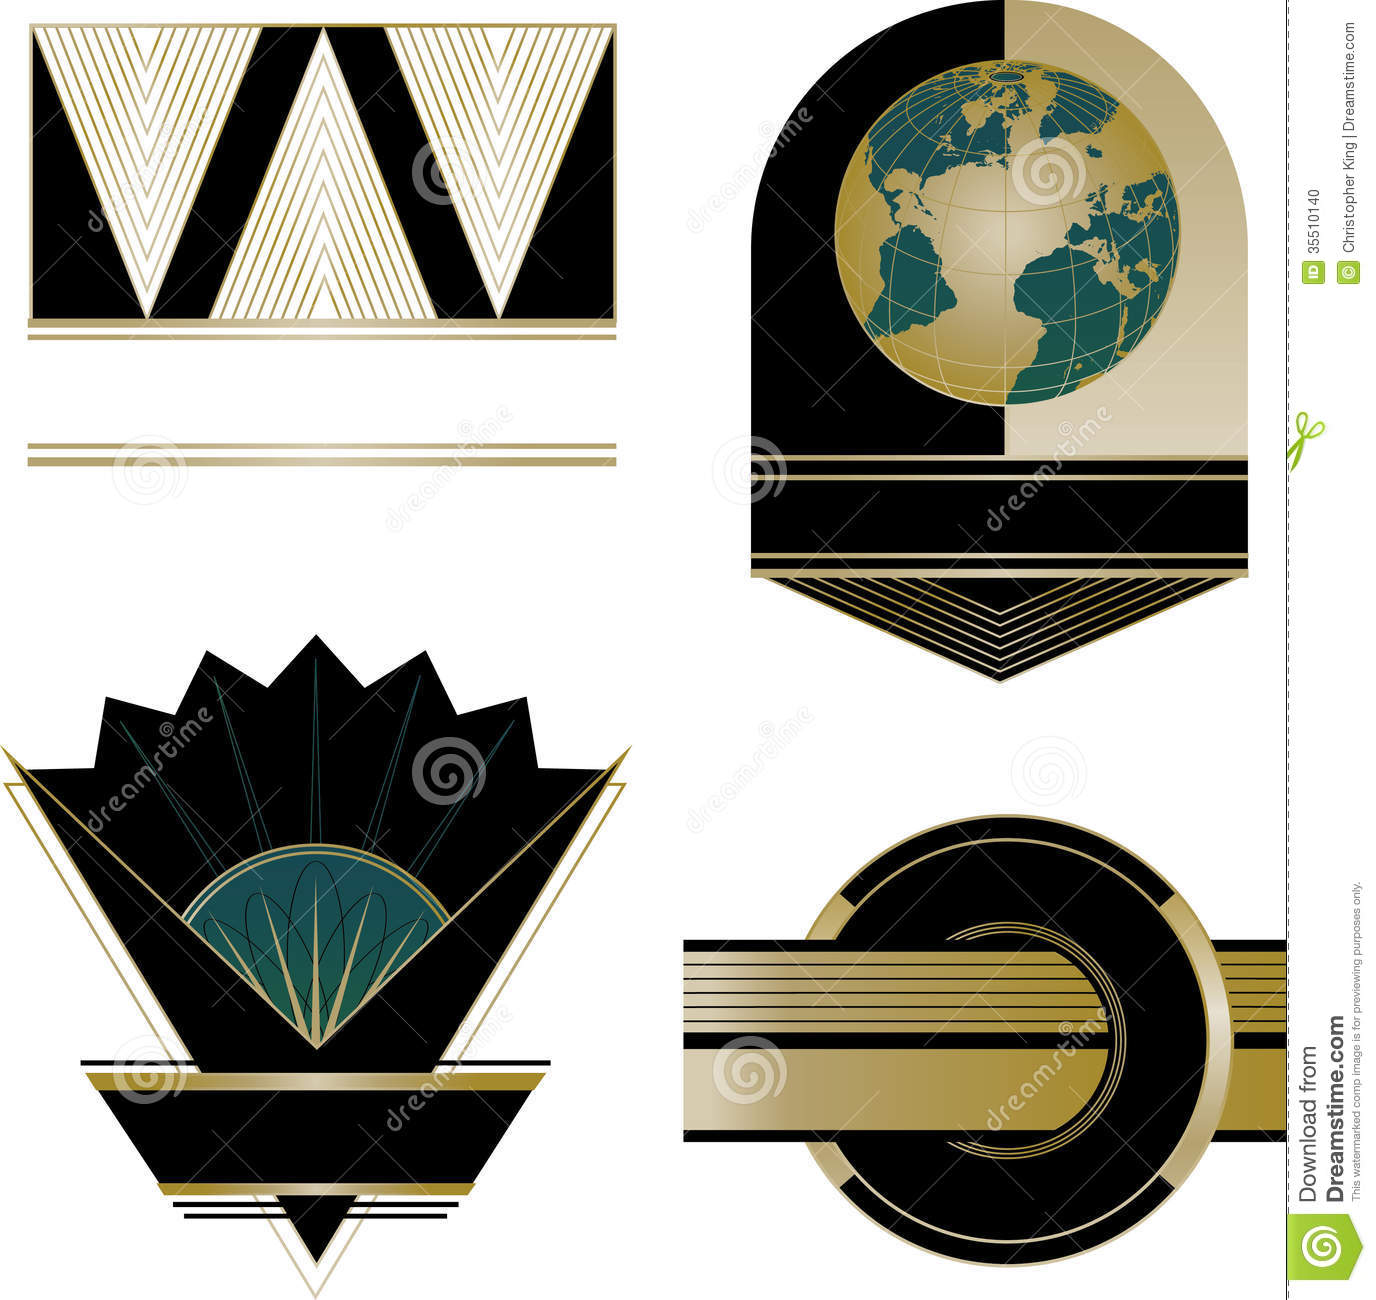 Art deco logos and design elements stock vector for Deco 5 elements